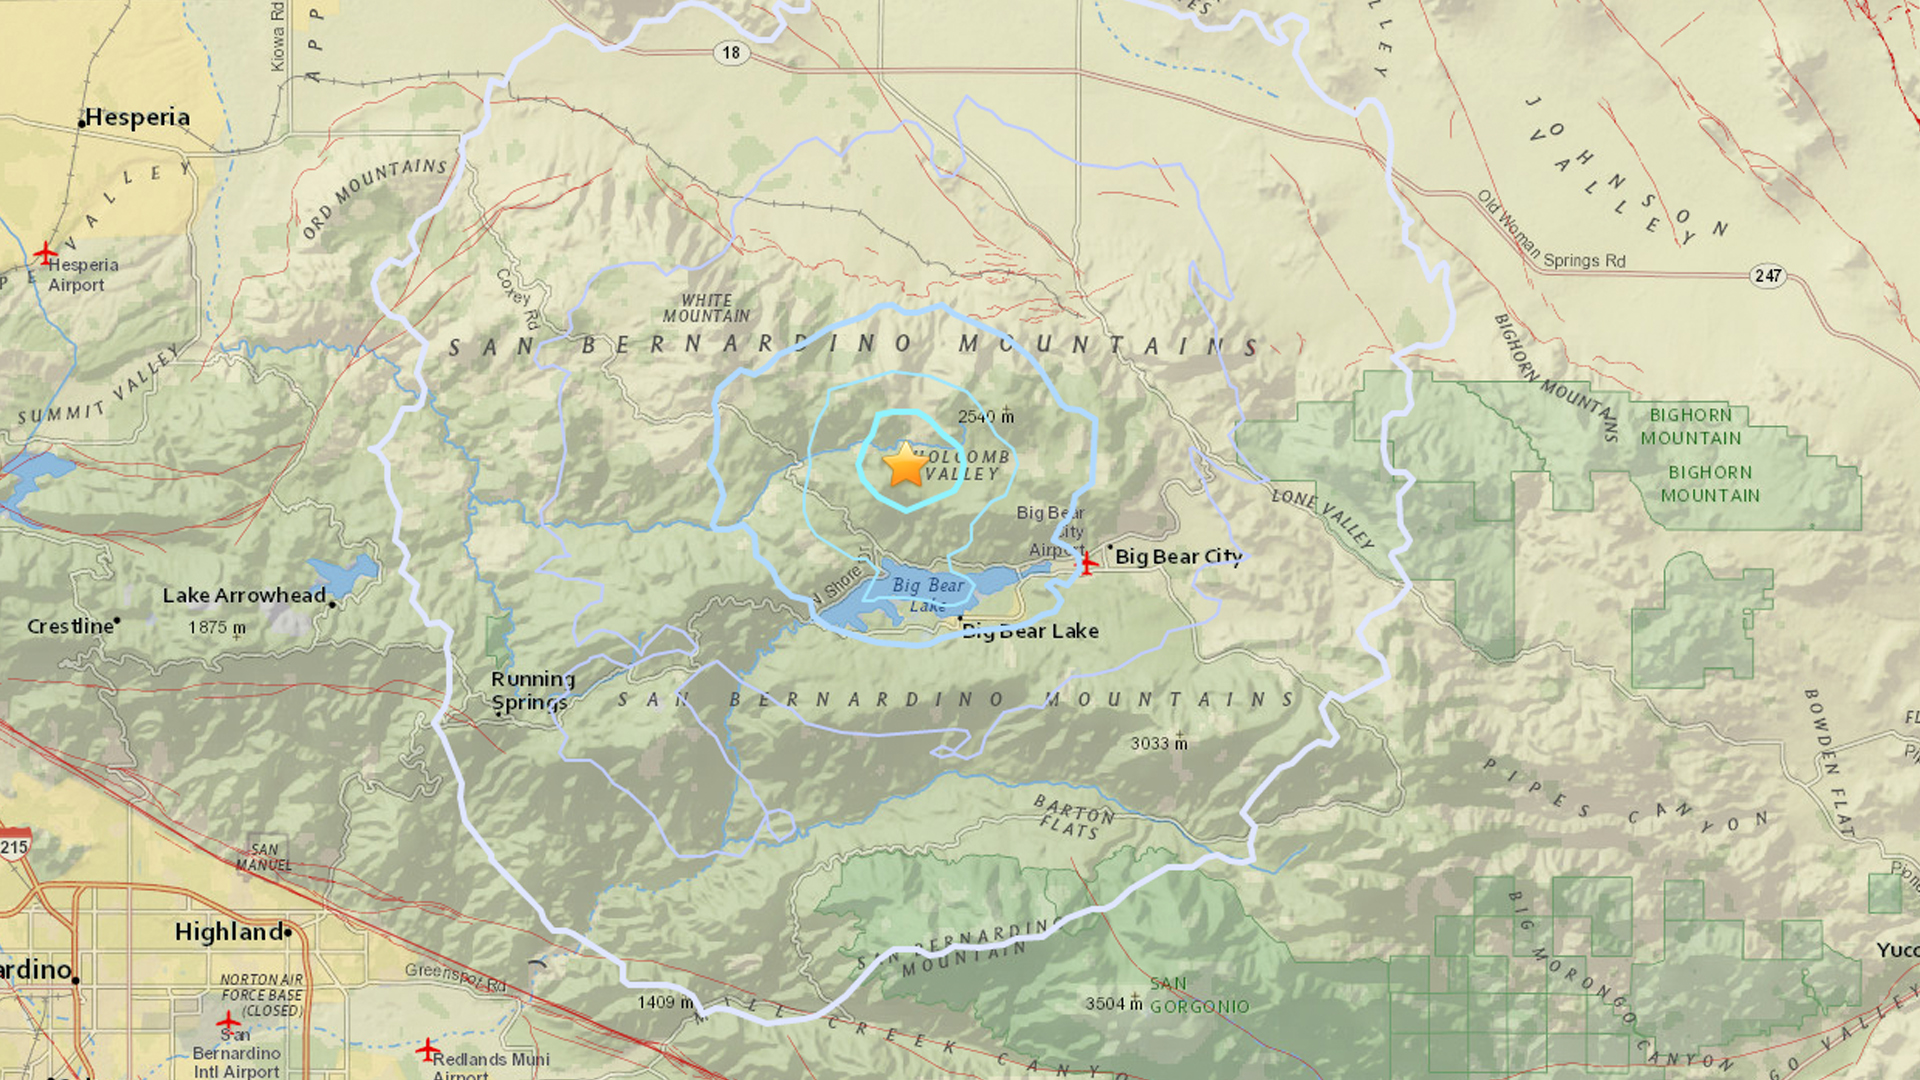 A USGS map shows the location of a magnitude 3.2 earthquake that struck near Big Bear City on Aug. 18, 2018.